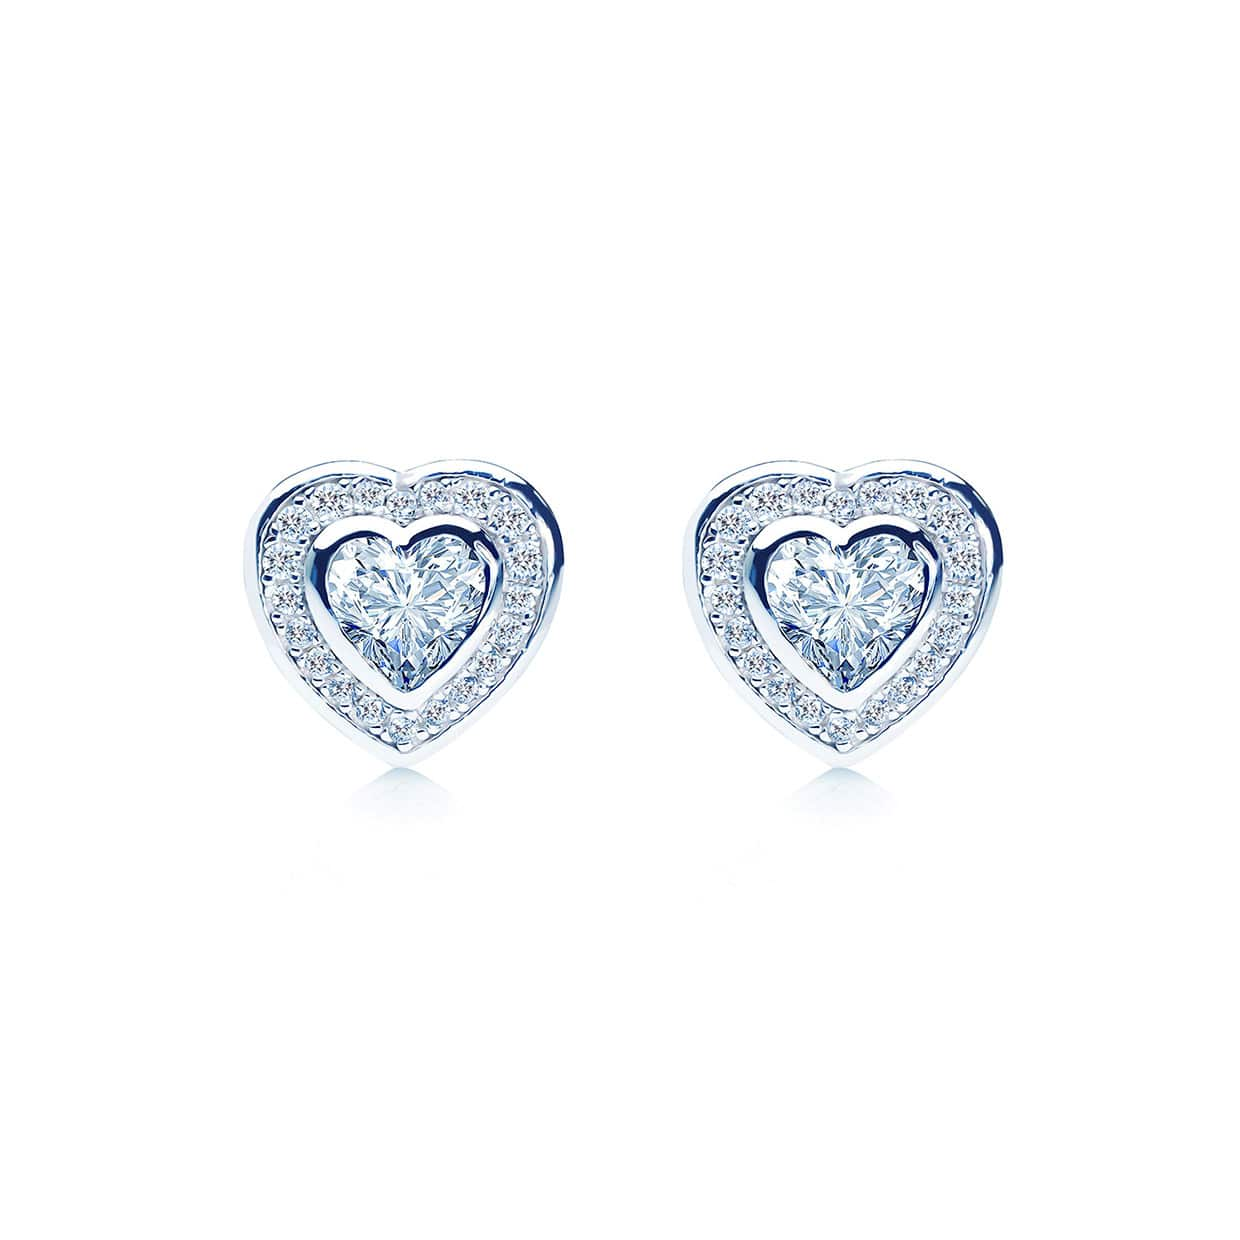 Loving Bezel Silver Heart Earrings - Abelstedt